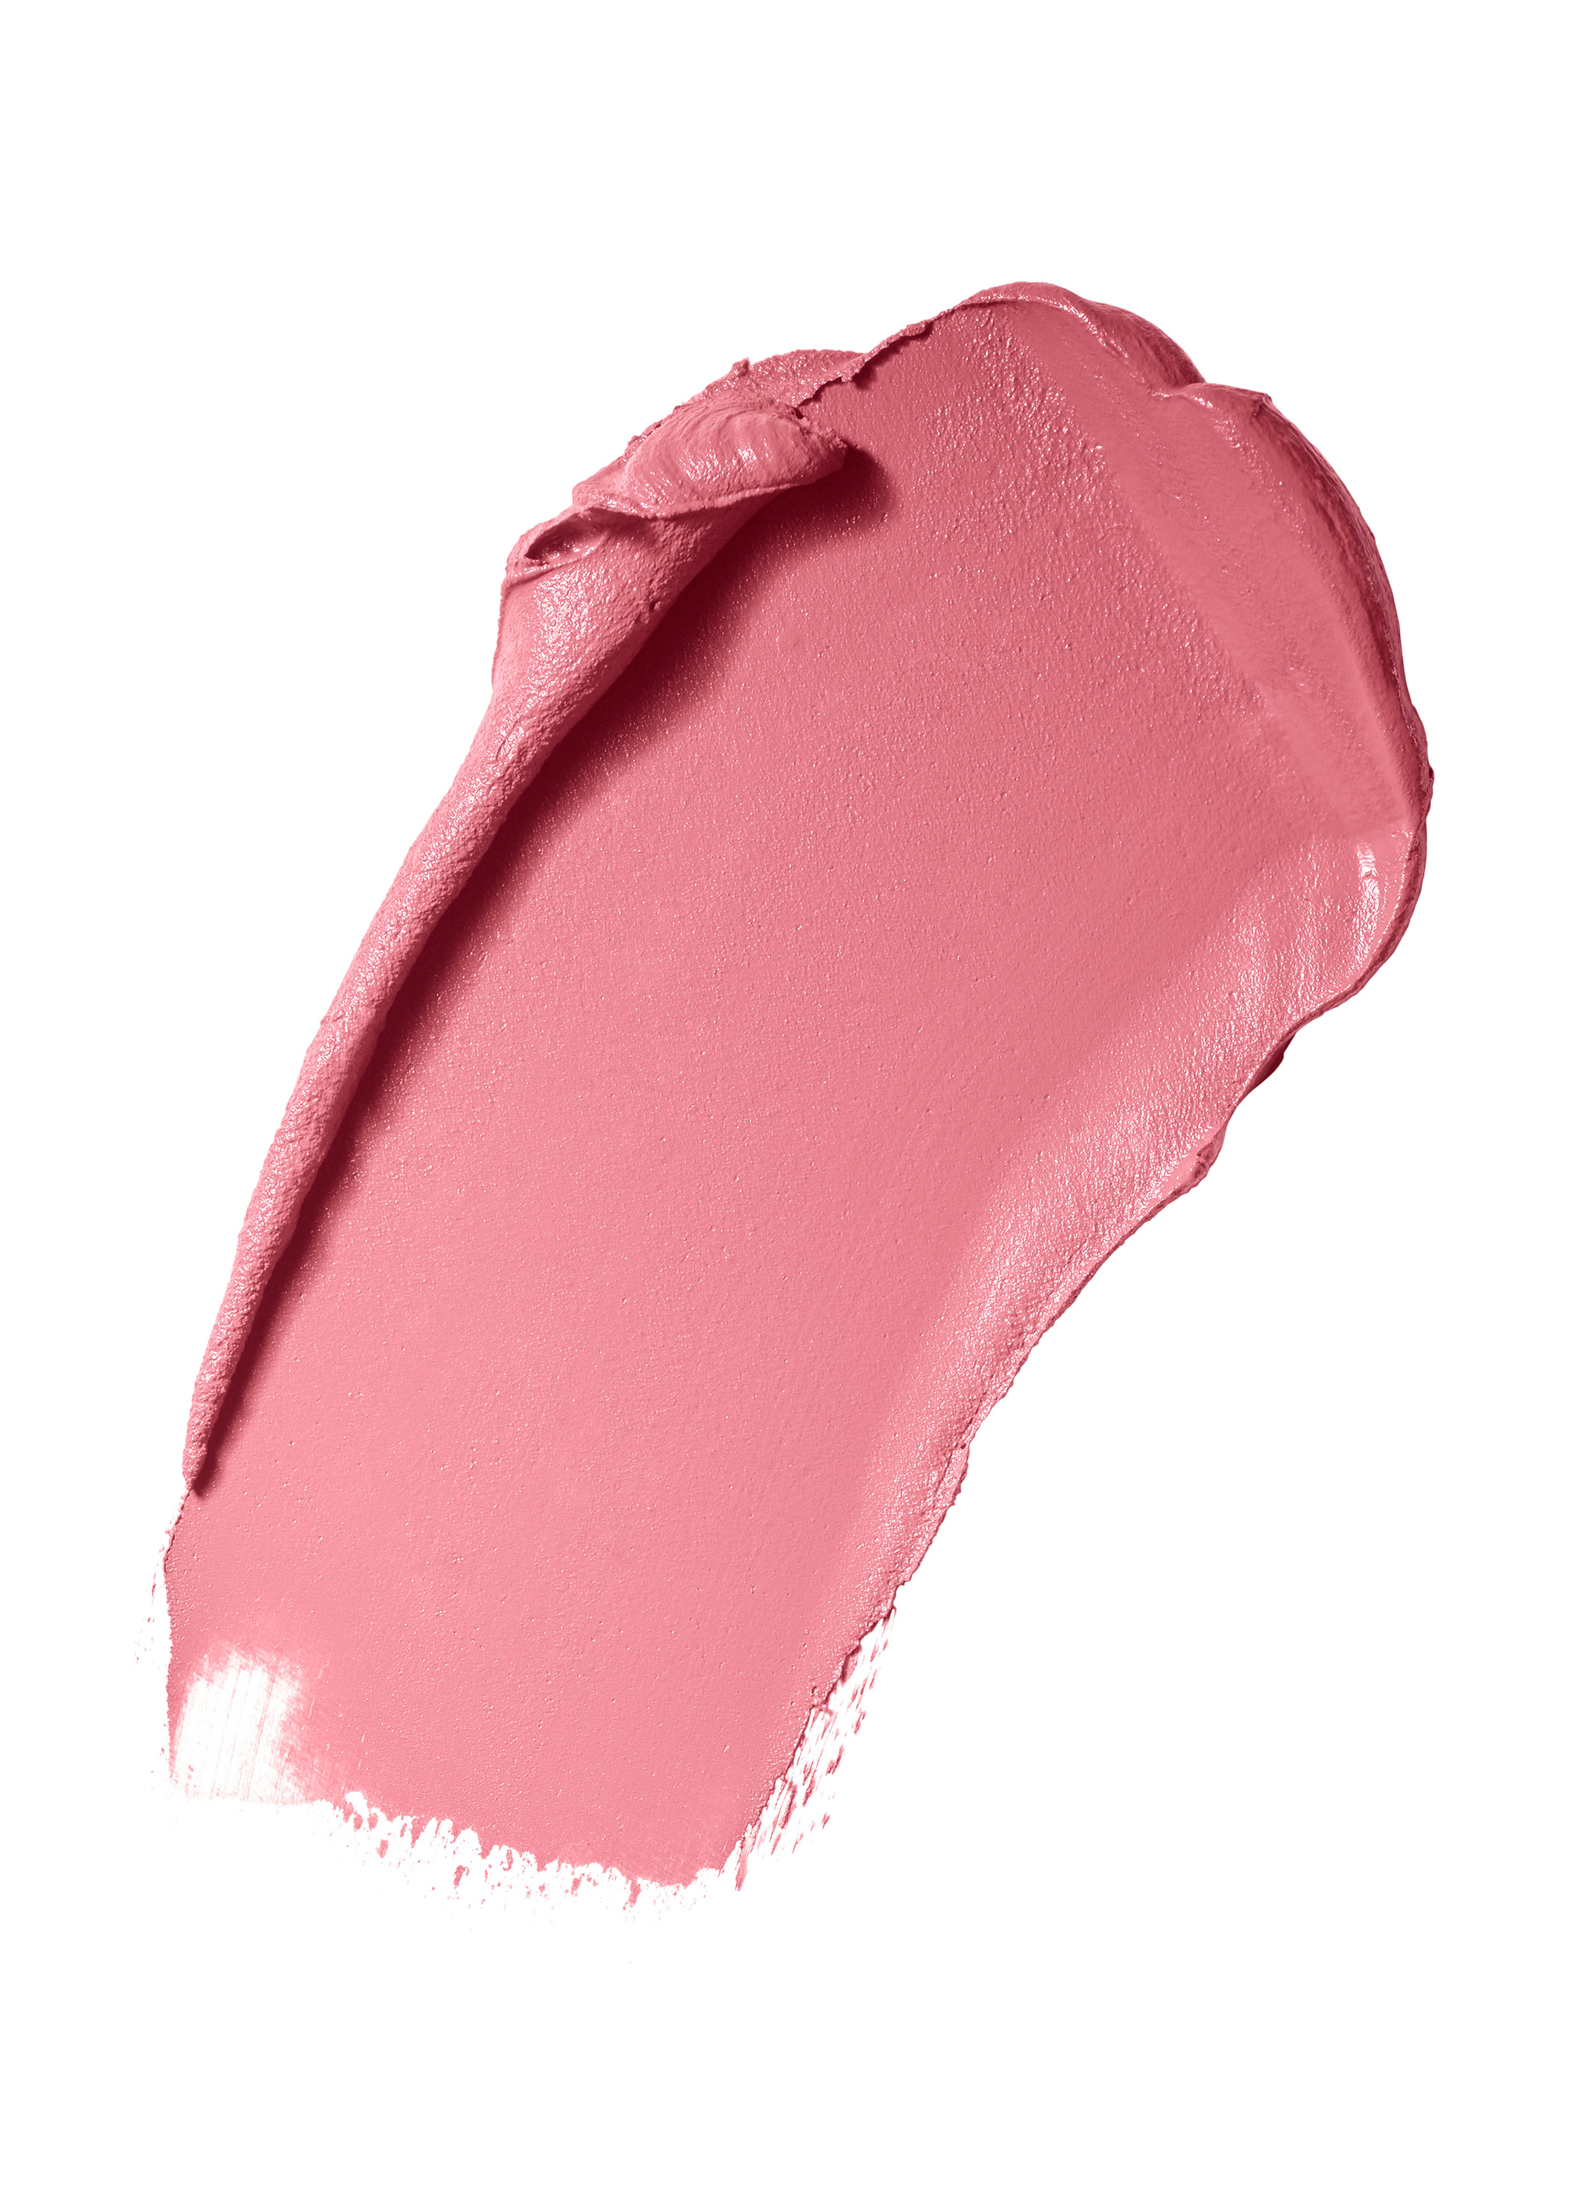 01 Luxe Matte Lip Color - Blushed Nude image number 1